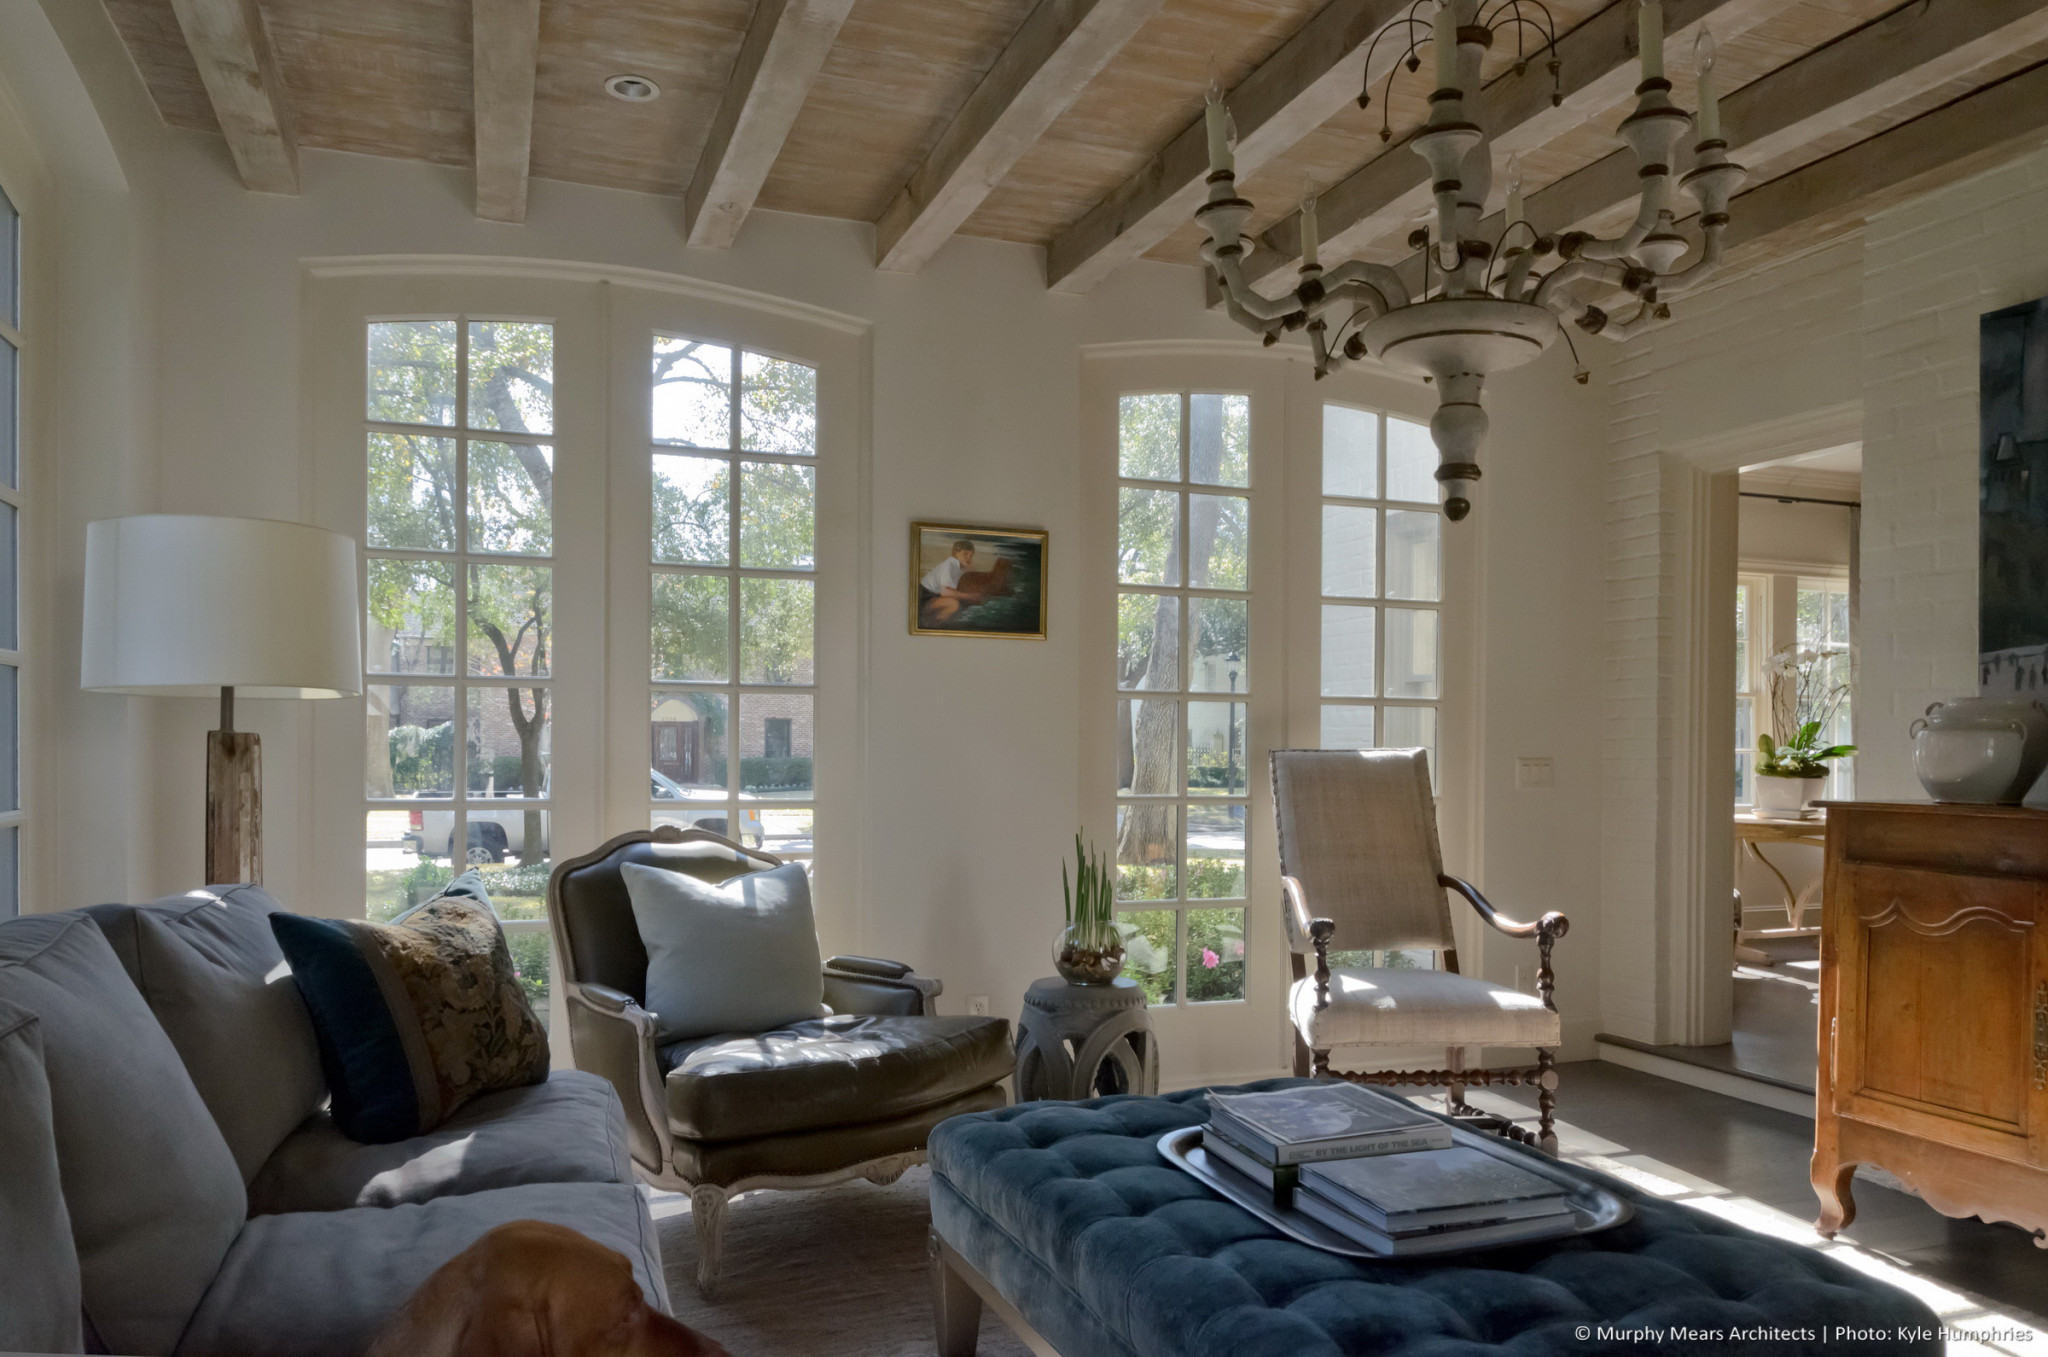 Pemberton Residence - New sitting room with exposed wood beams and ceiling supporting a second-floor addition above.